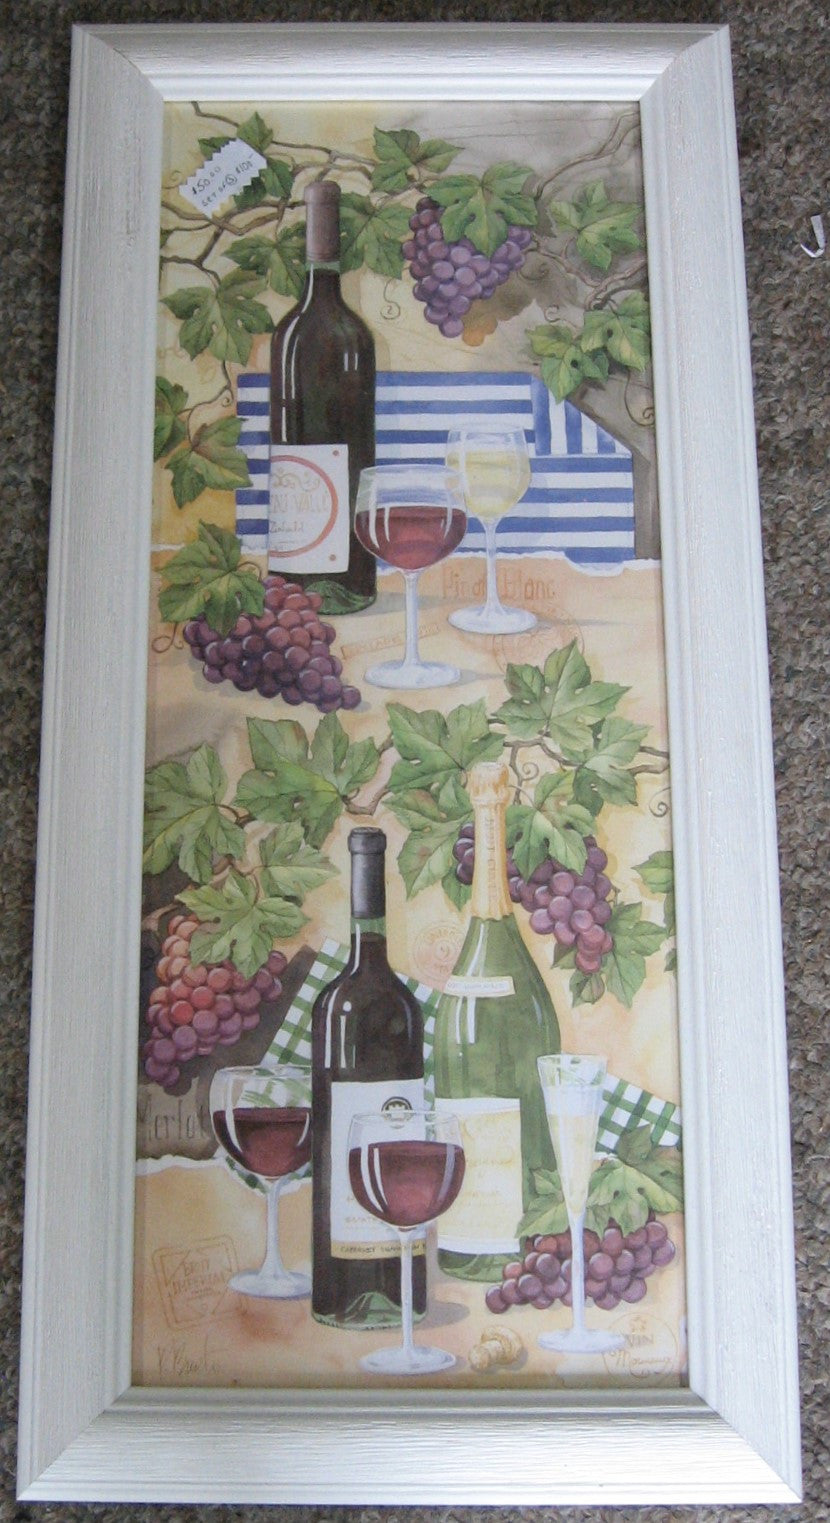 CUSTOM FRAMED ART PRINT, PAUL BRENT, WHITE DRIFT WOOD FRAME, WINE BOTTLES AND GLASSES